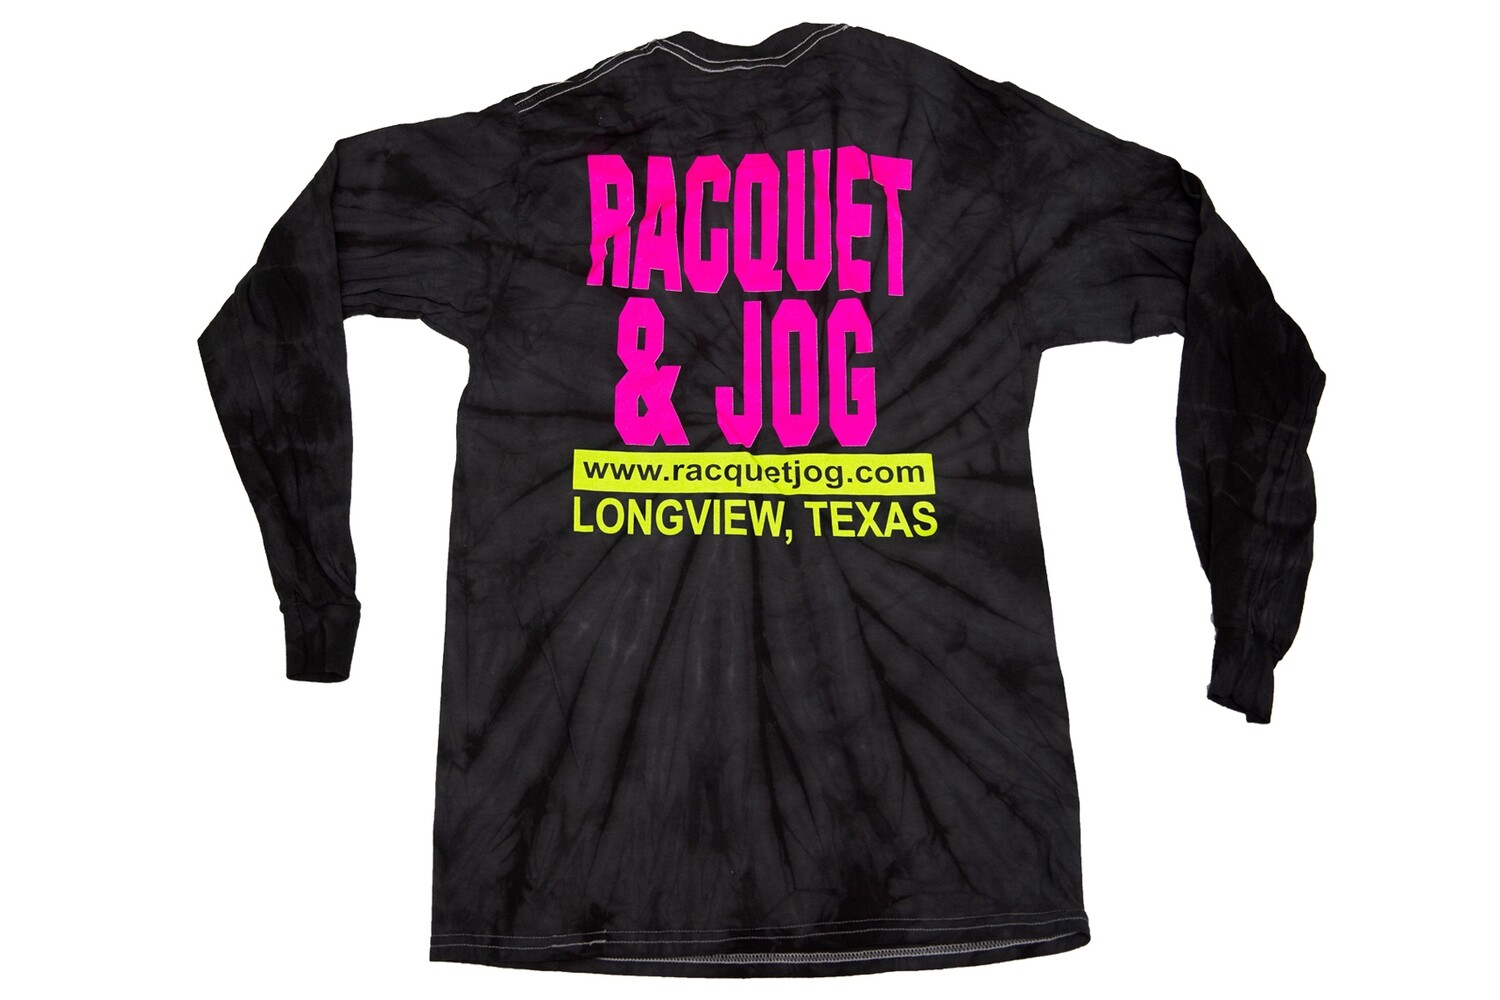 Racquet & Jog Long Sleeve Old School Fashion Tie Dye Tee